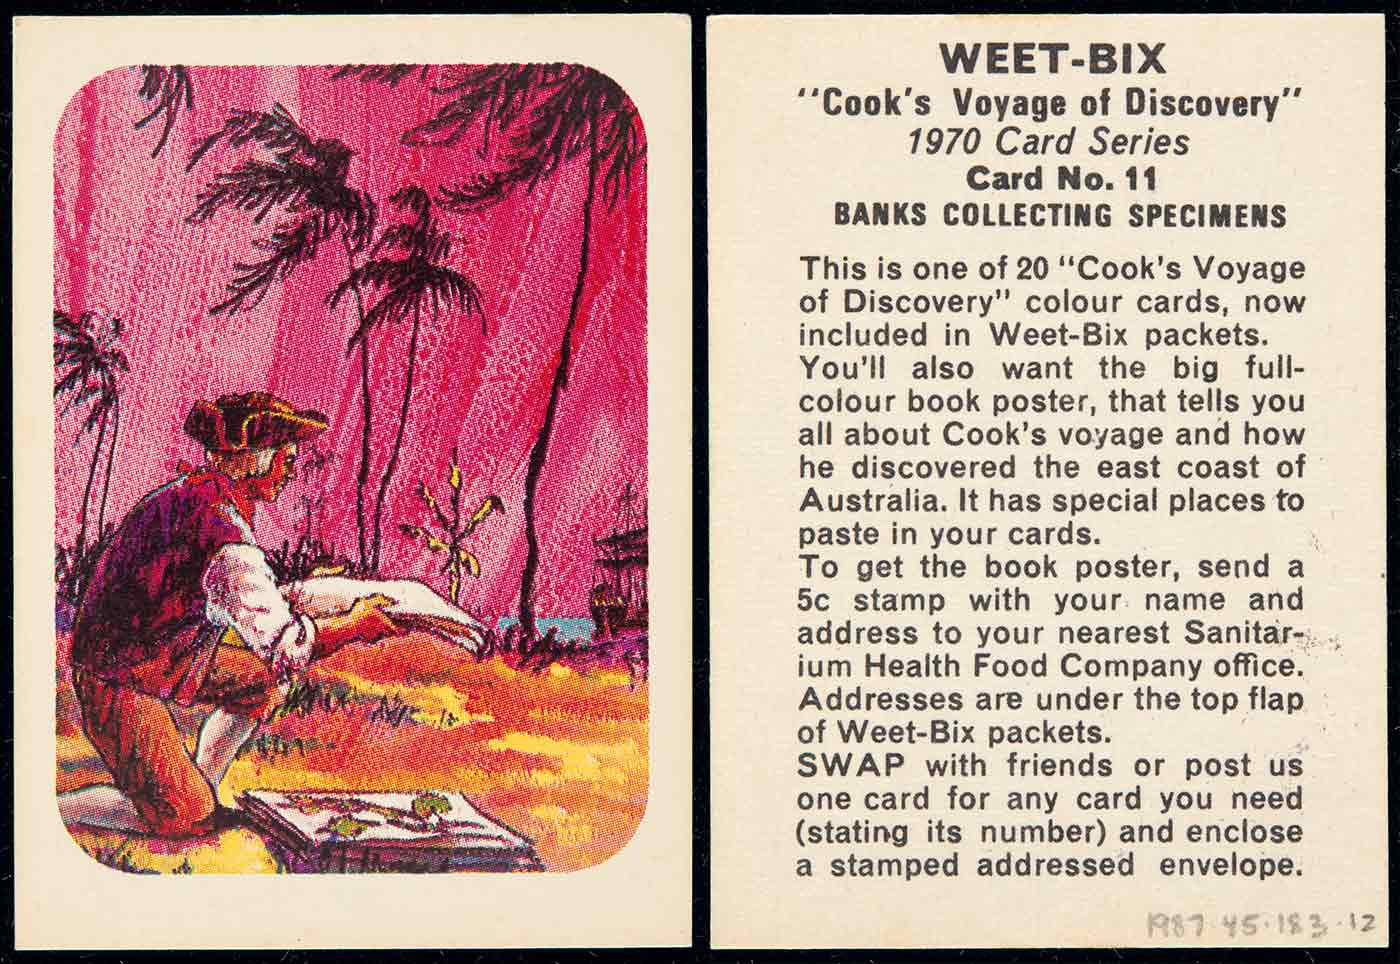 A swap card collected from a Weet-bix cereal packet. The card is number 11 in a series of 20. The card features a colour illustration of a man kneeling by a coastline, arranging a sheaf of papers. The background features a pink sky with palm trees silhouetted against it. Text on the reverse side of the card reads 'WEET-BIX /